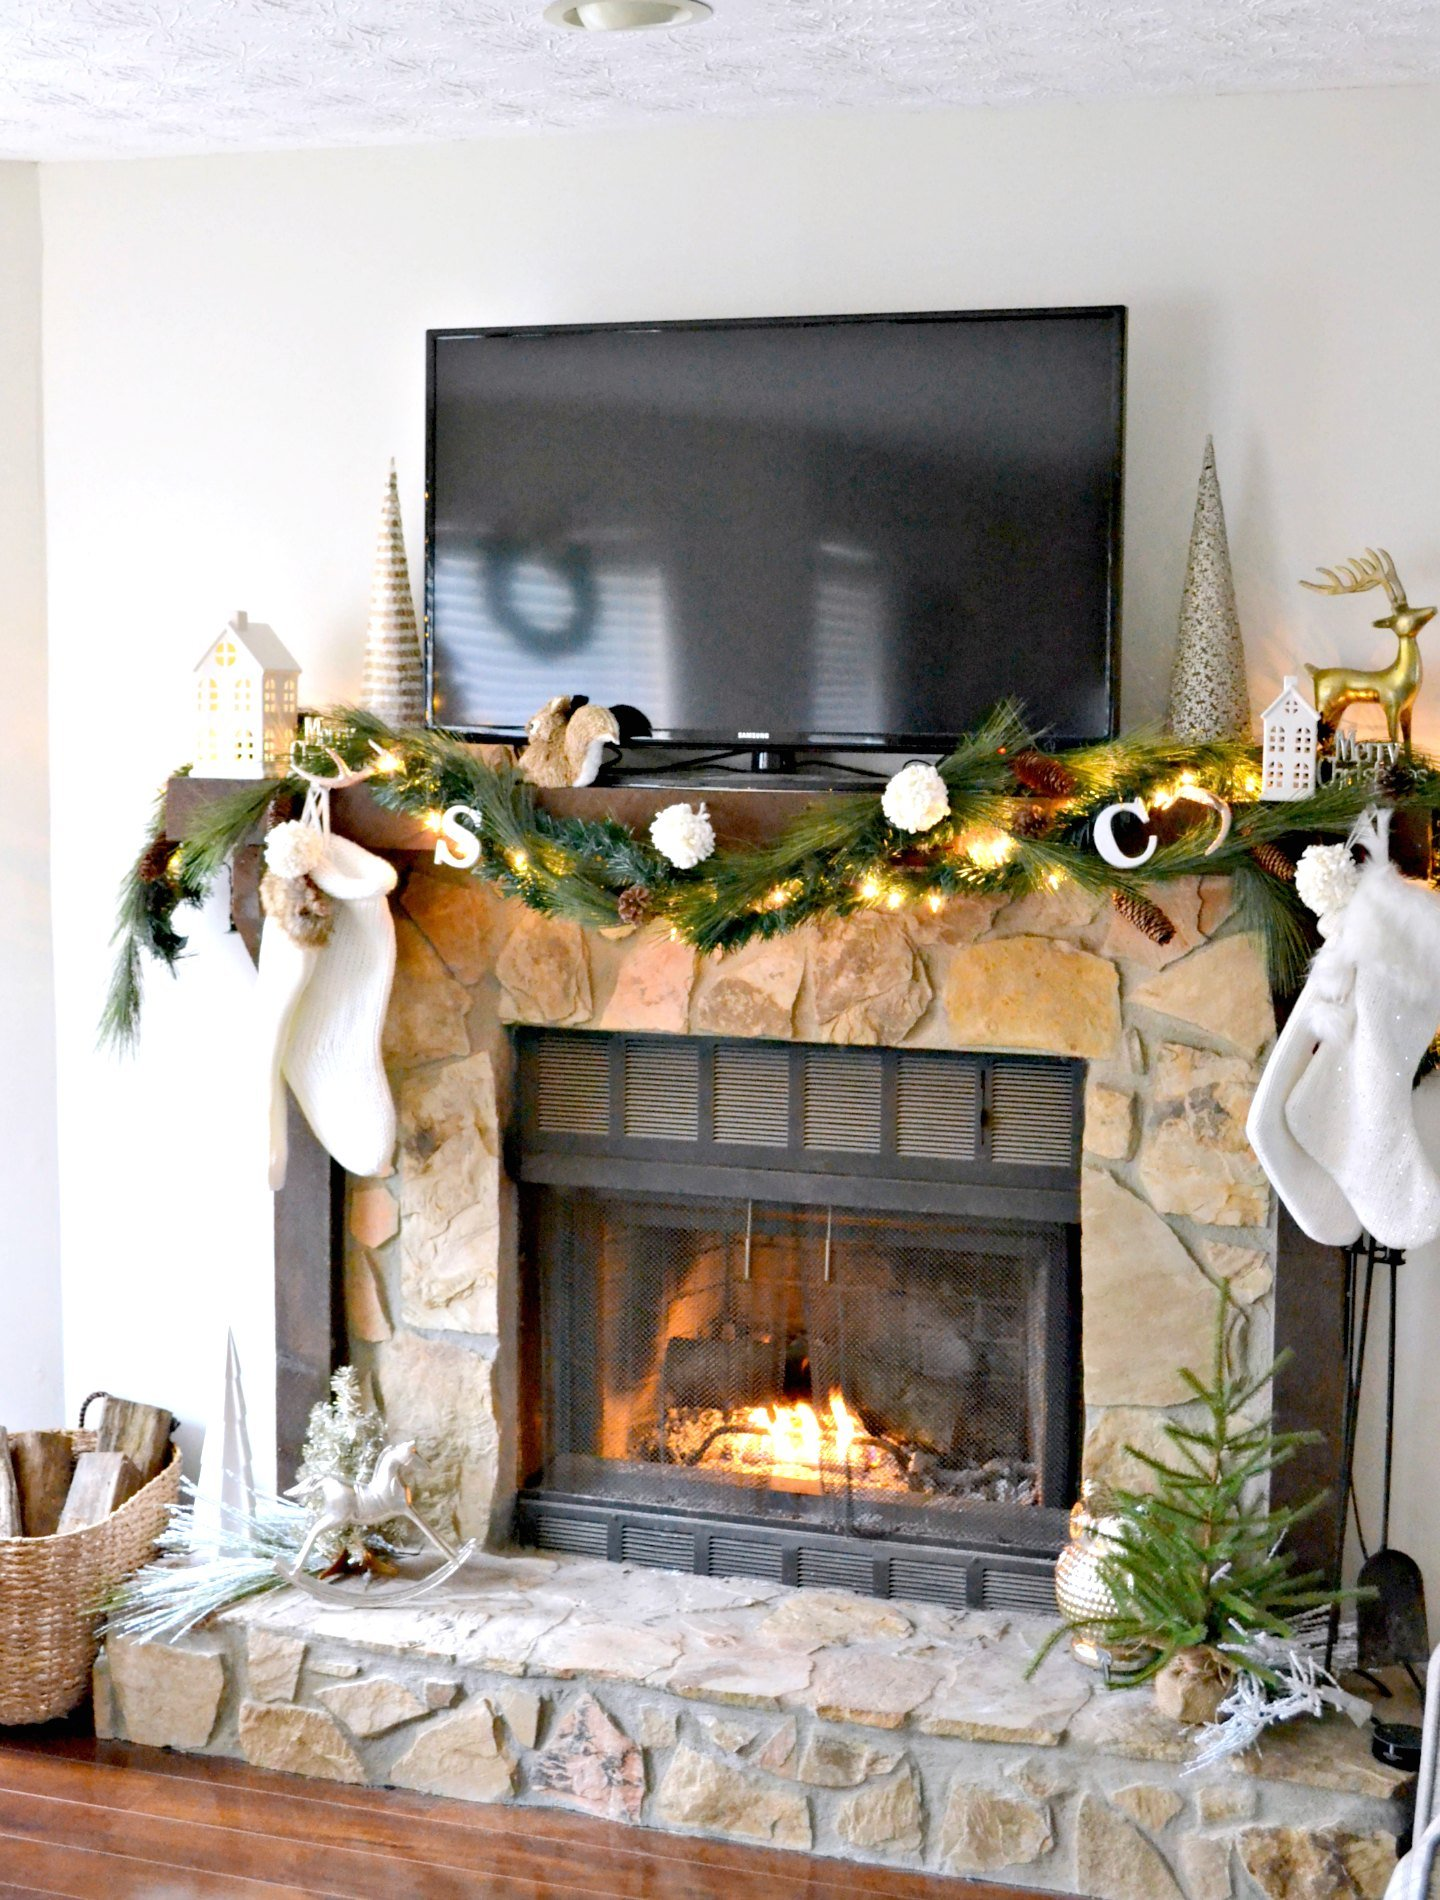 neutral Christmas decor on fireplace mantel